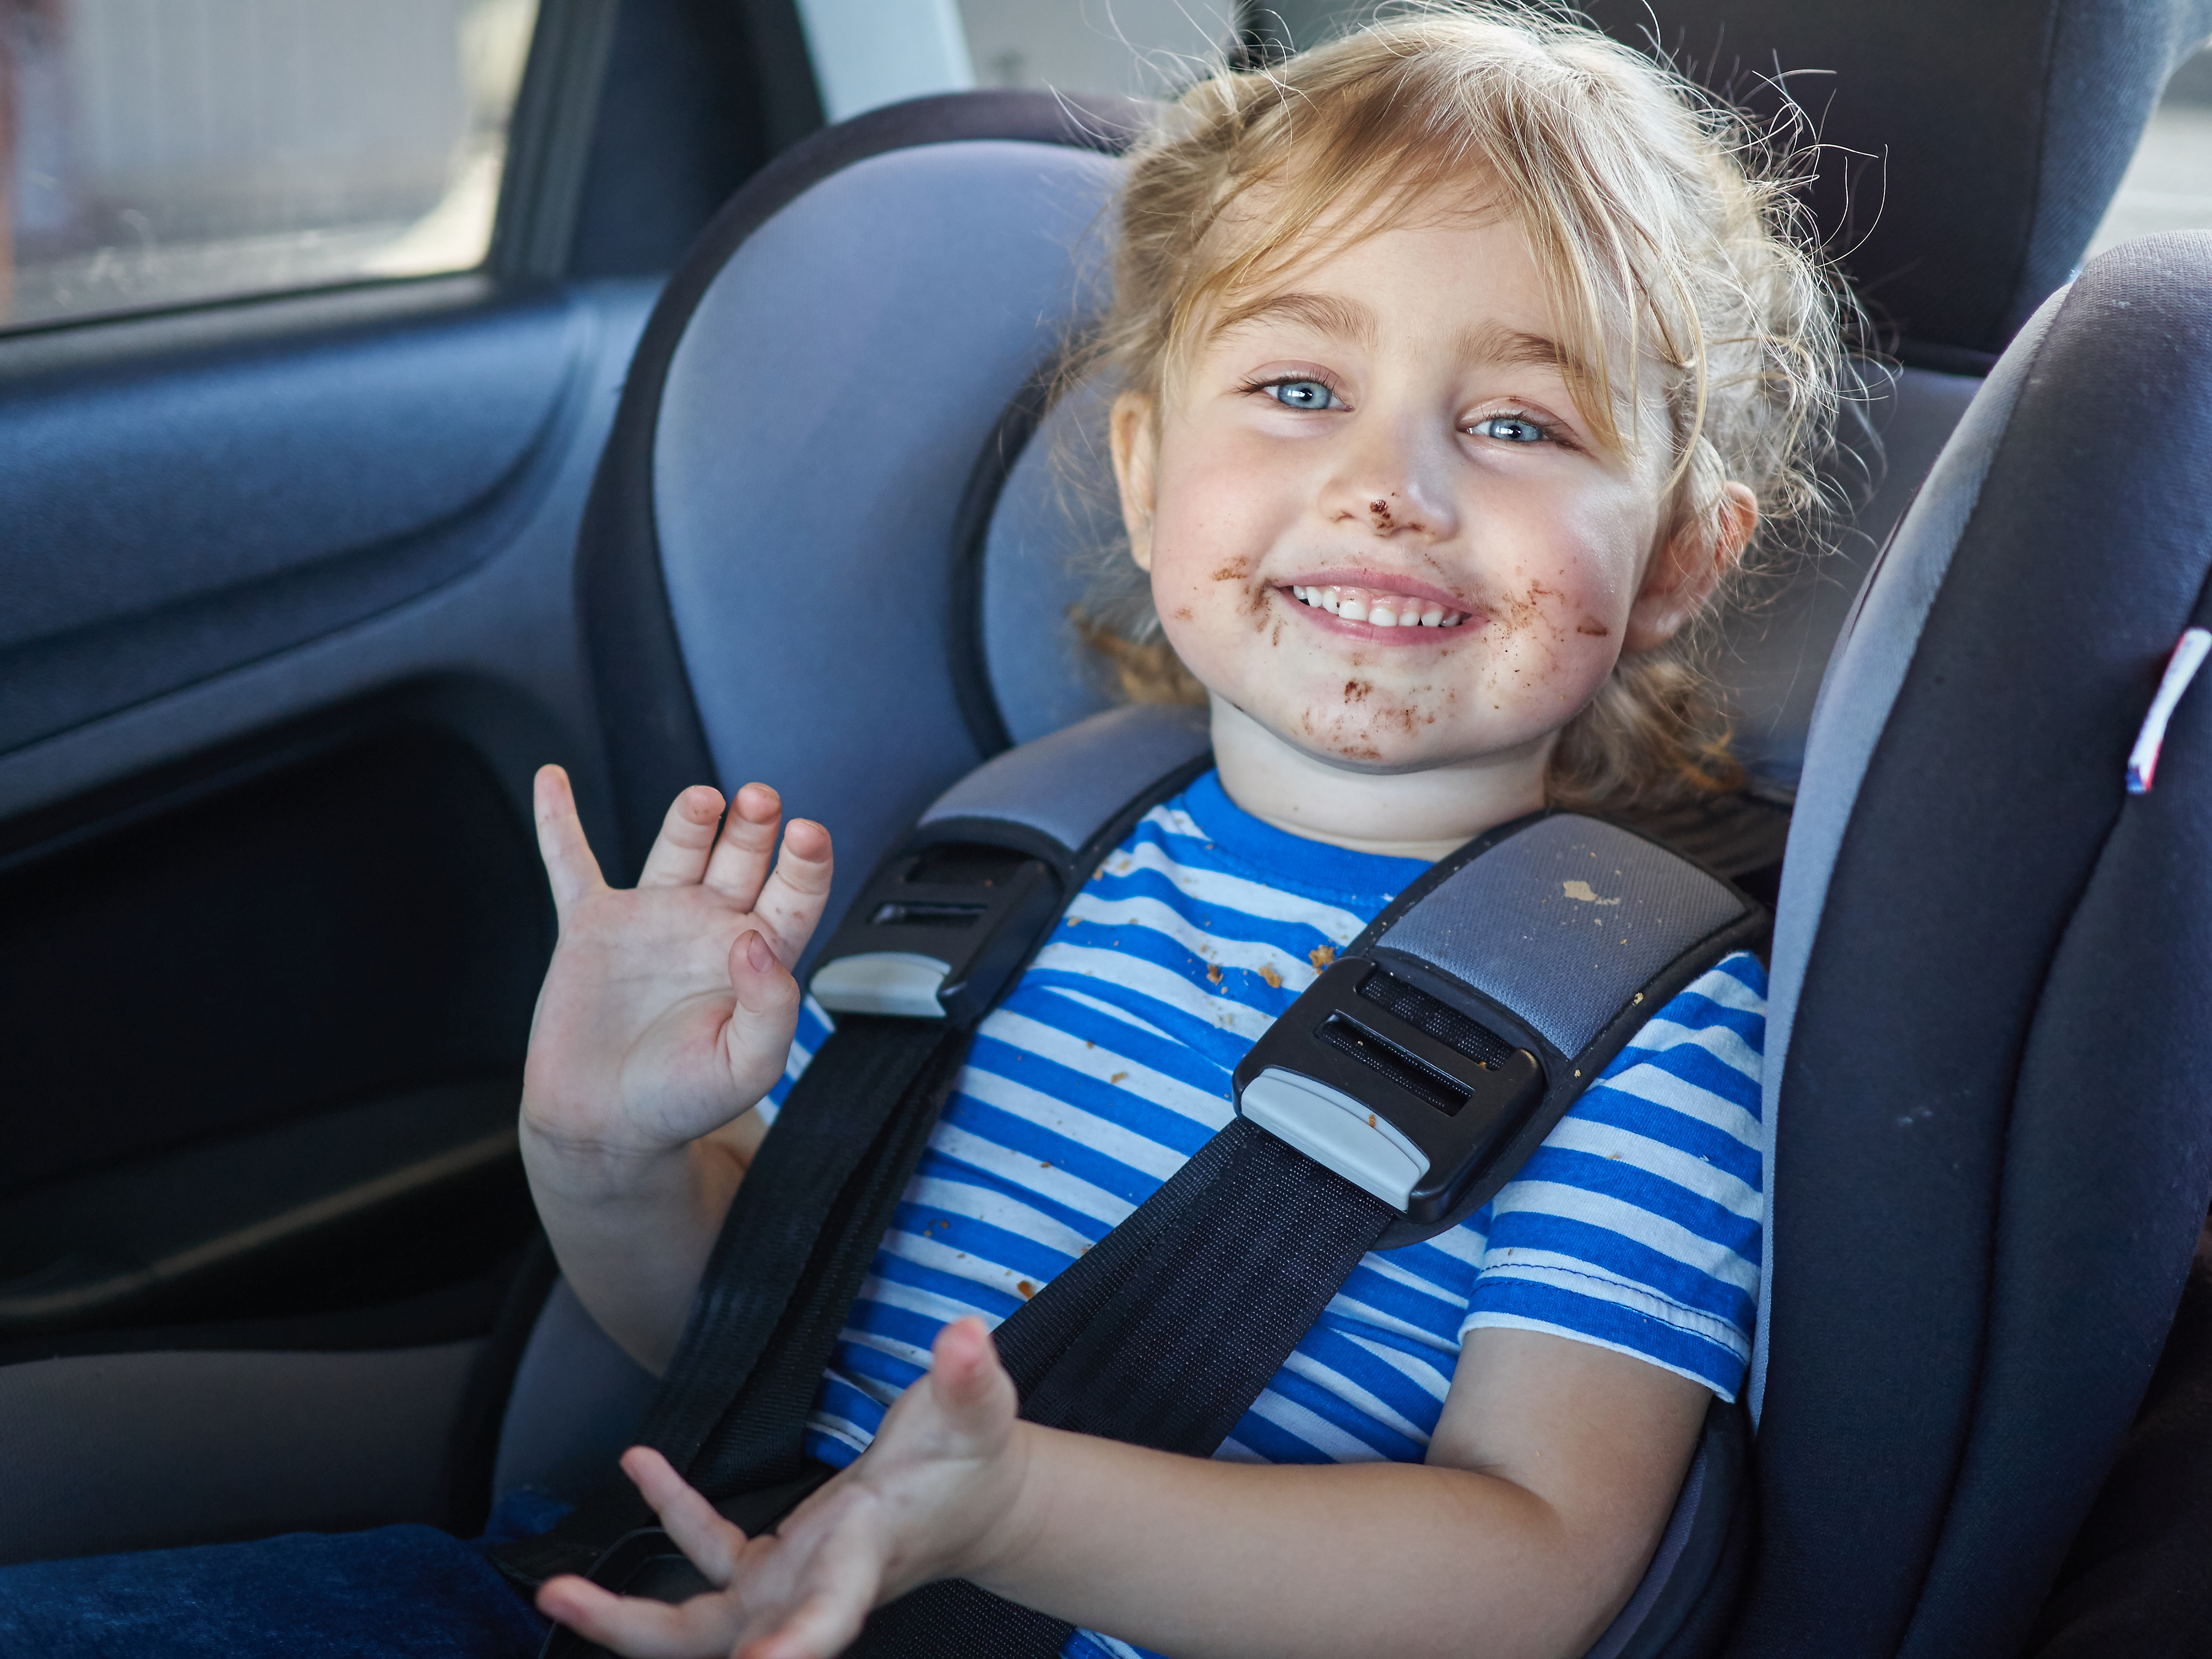 Cleaning Your Car Seats After the School Run